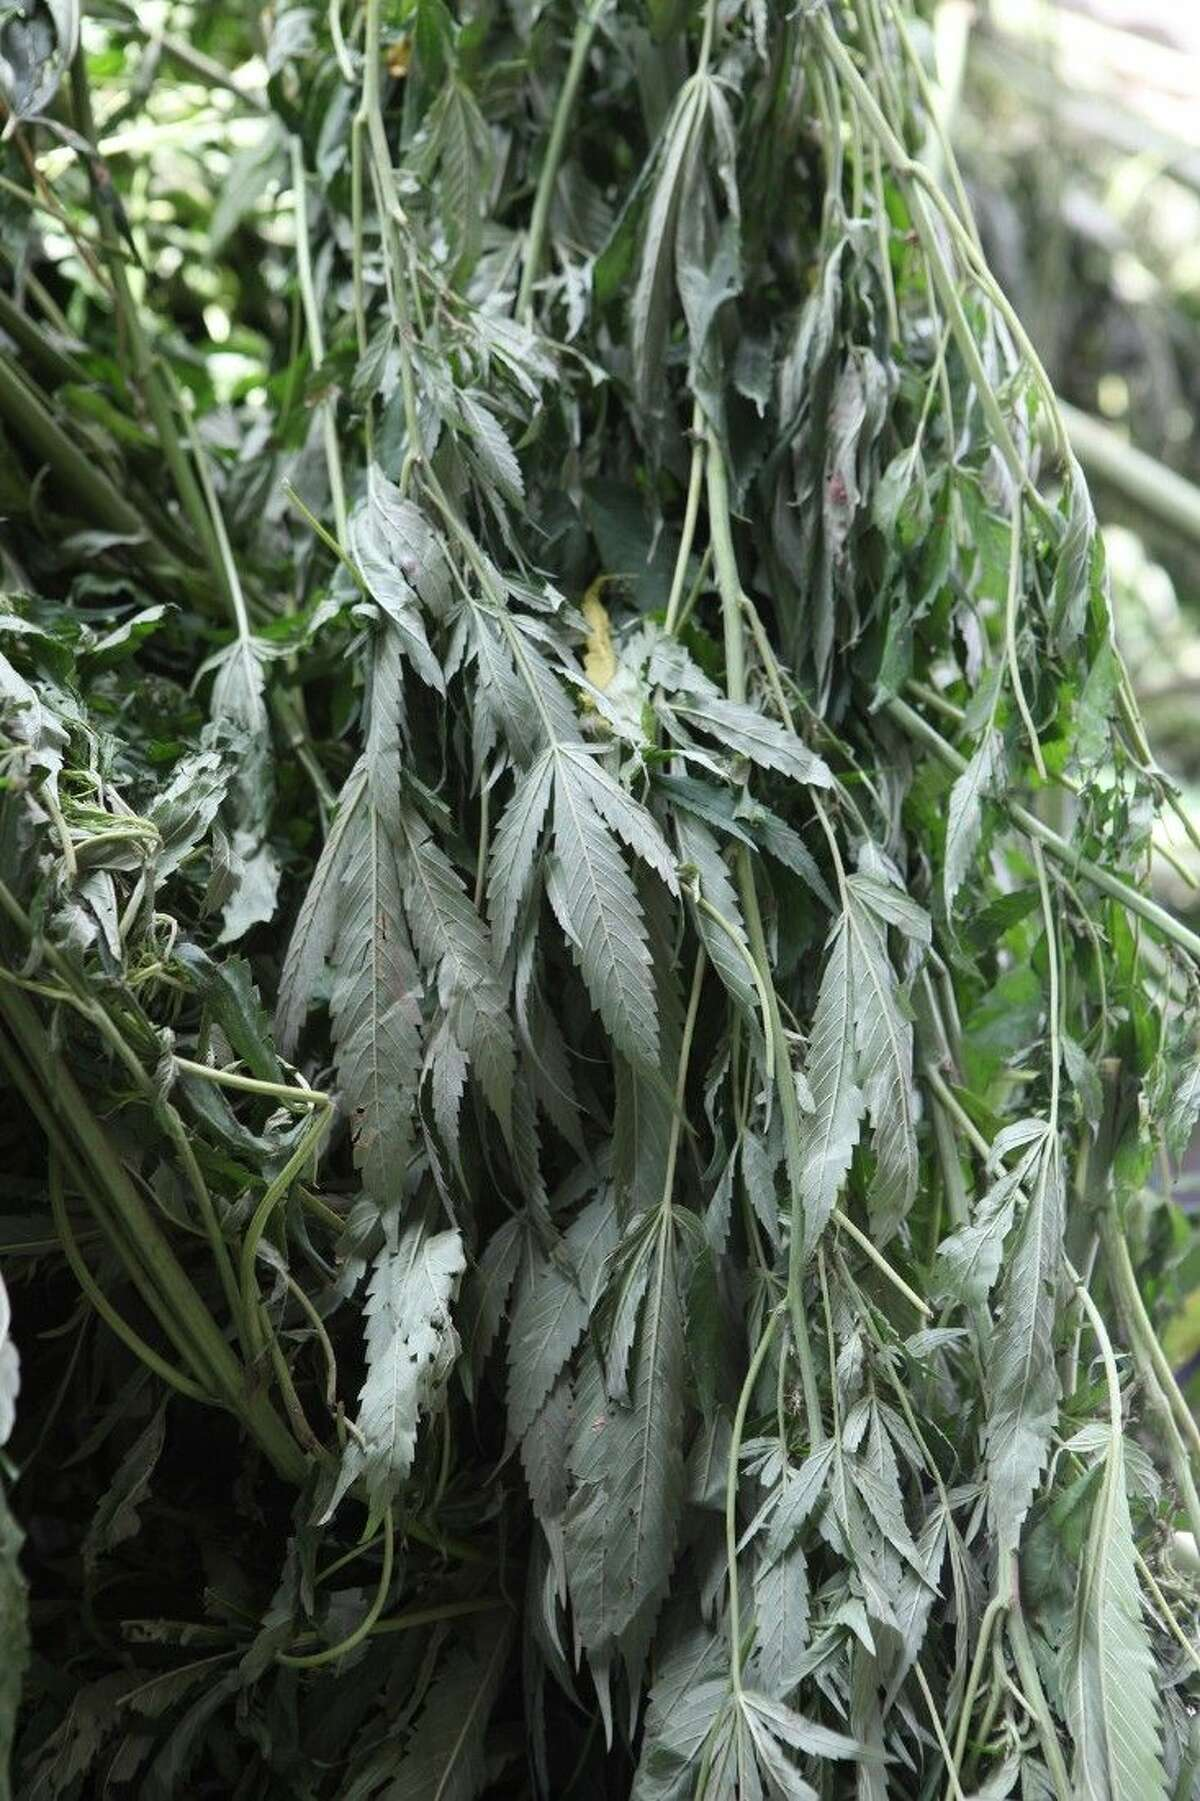 Some of the $10,000 marijuana plants discovered in a clandestine grow field at Cullinan Park in the Sugar Land area, which possessed an estimated street value of $10 million before authorities raided the operation on Tuesday, Aug. 19.